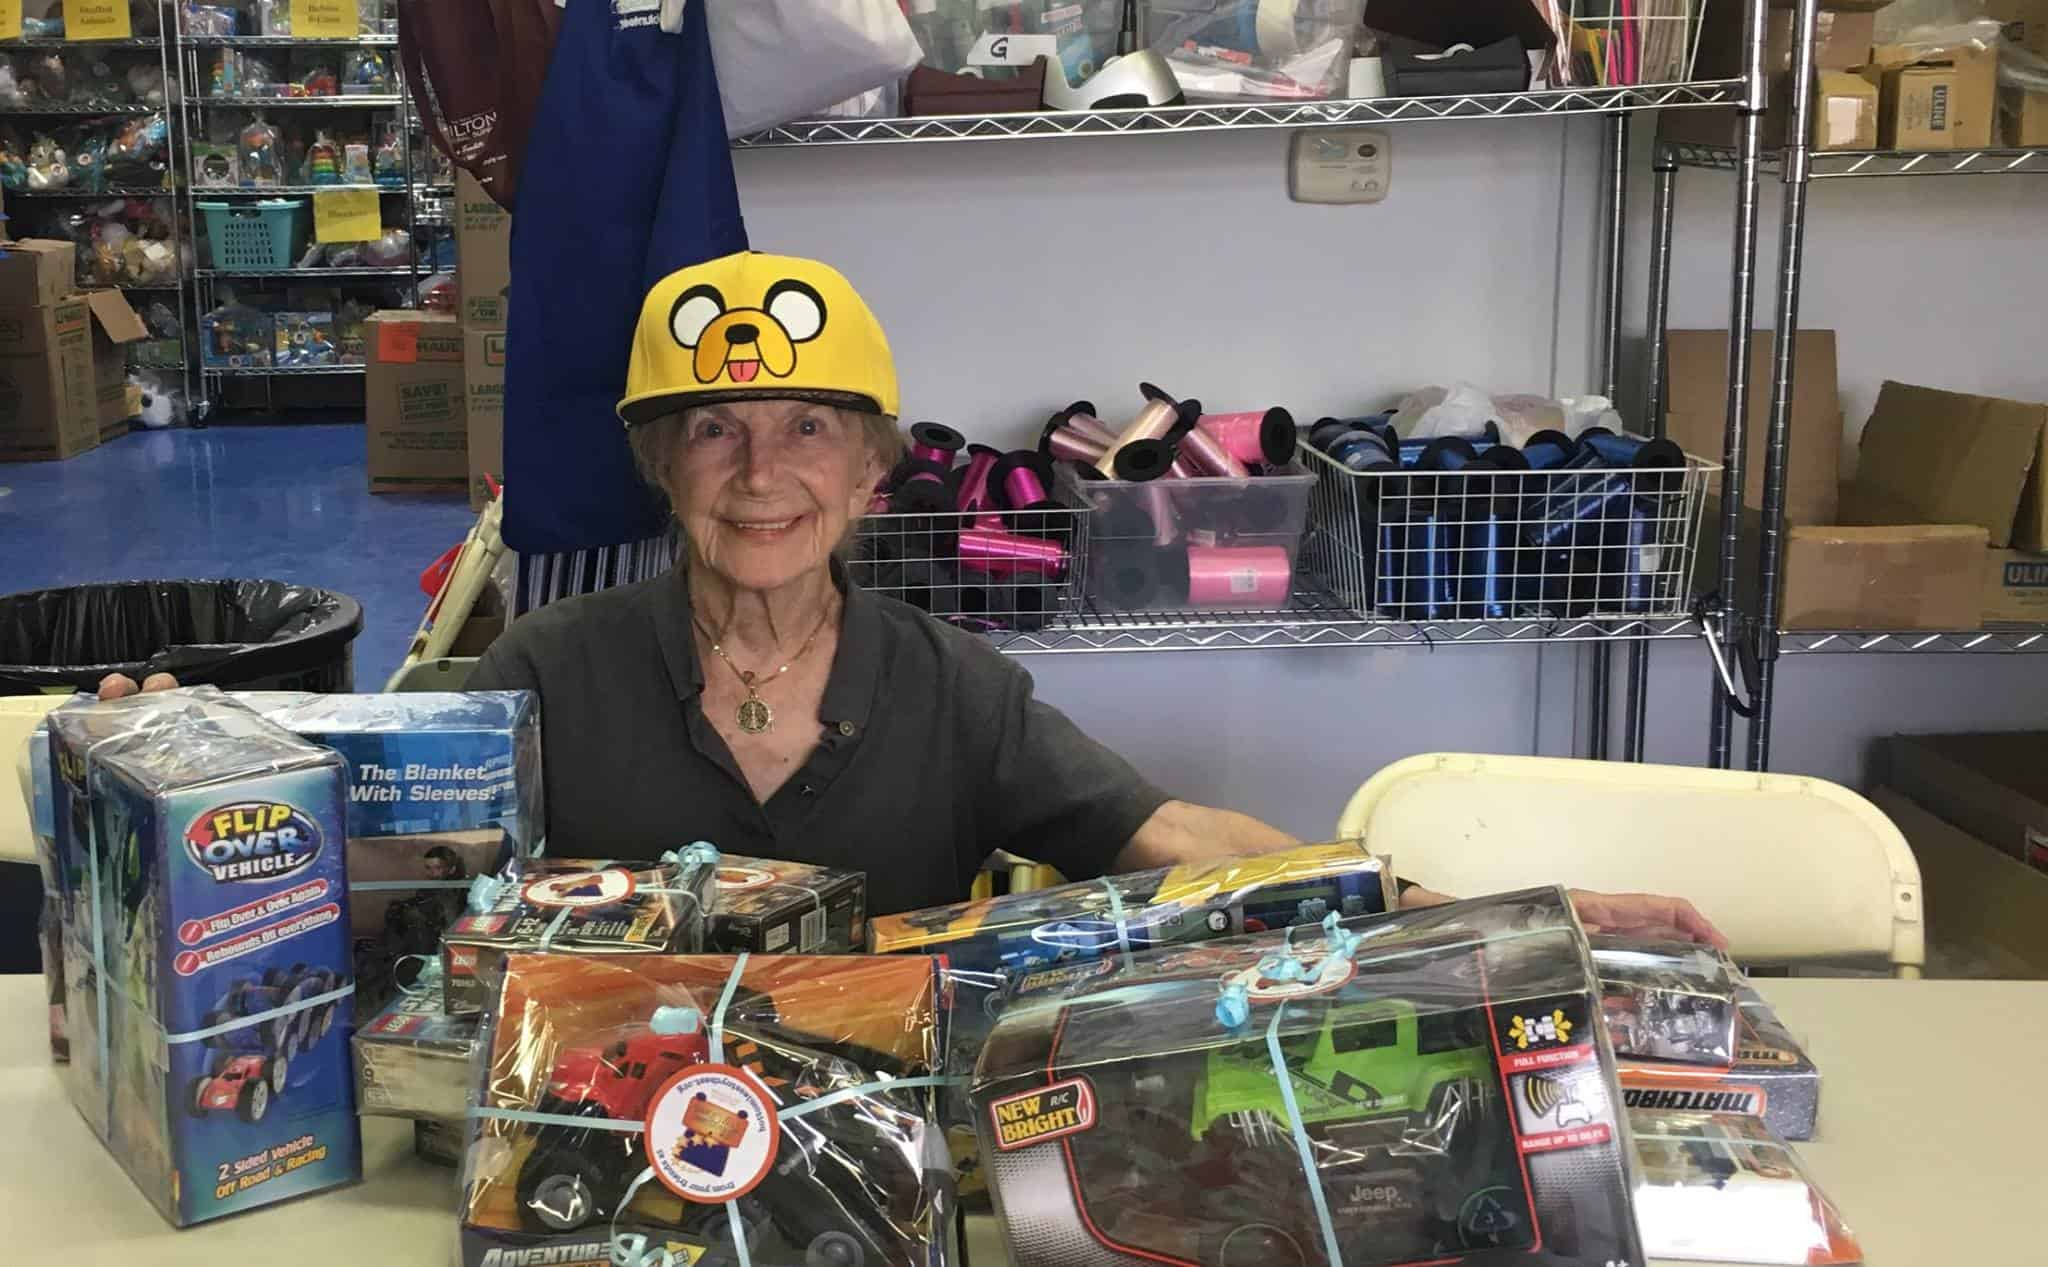 A woman wearing a hat and wrapping gifts.